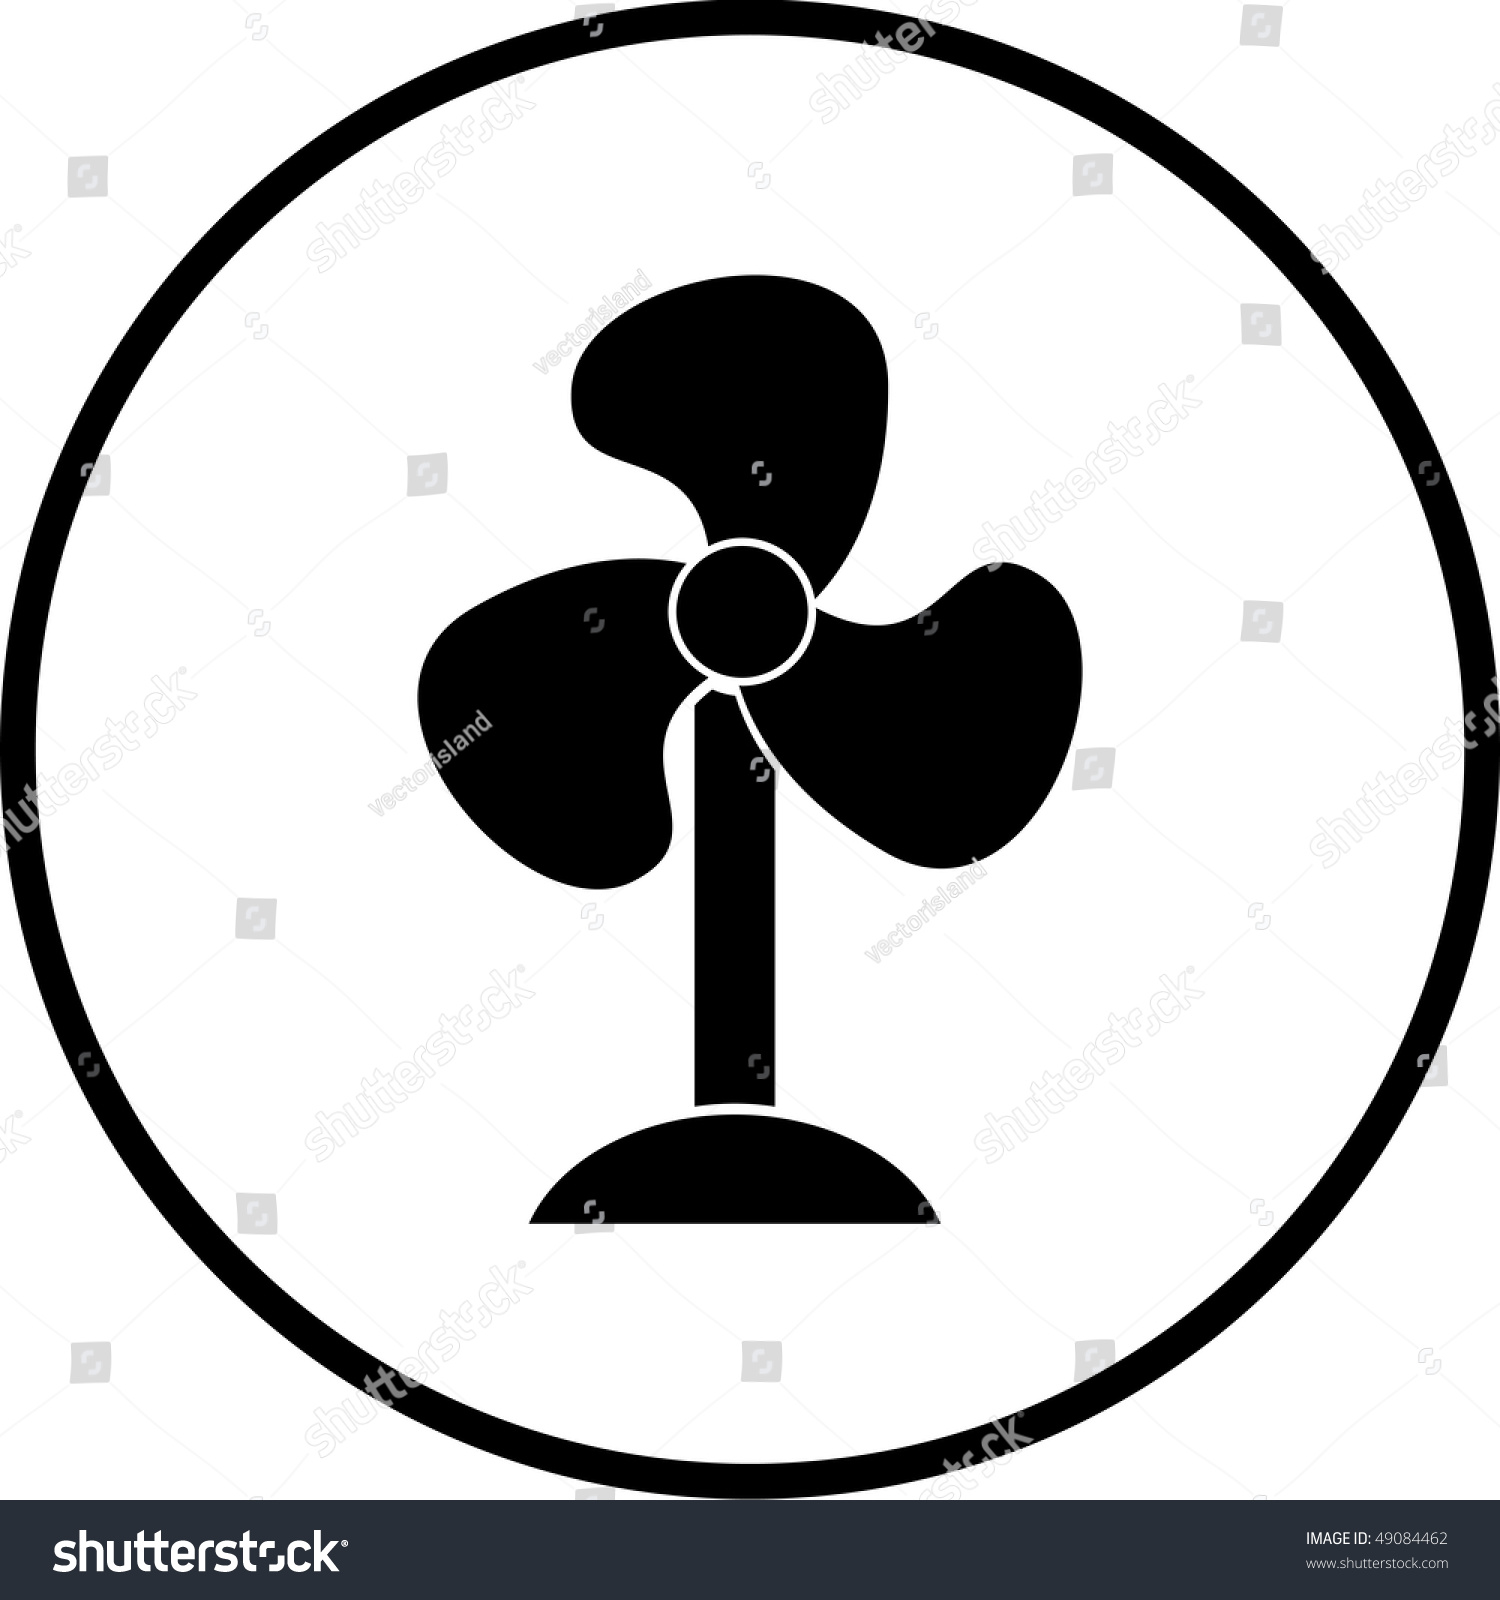 Symbool Ventilator Fan Symbol Stock Photo 49084462 Shutterstock